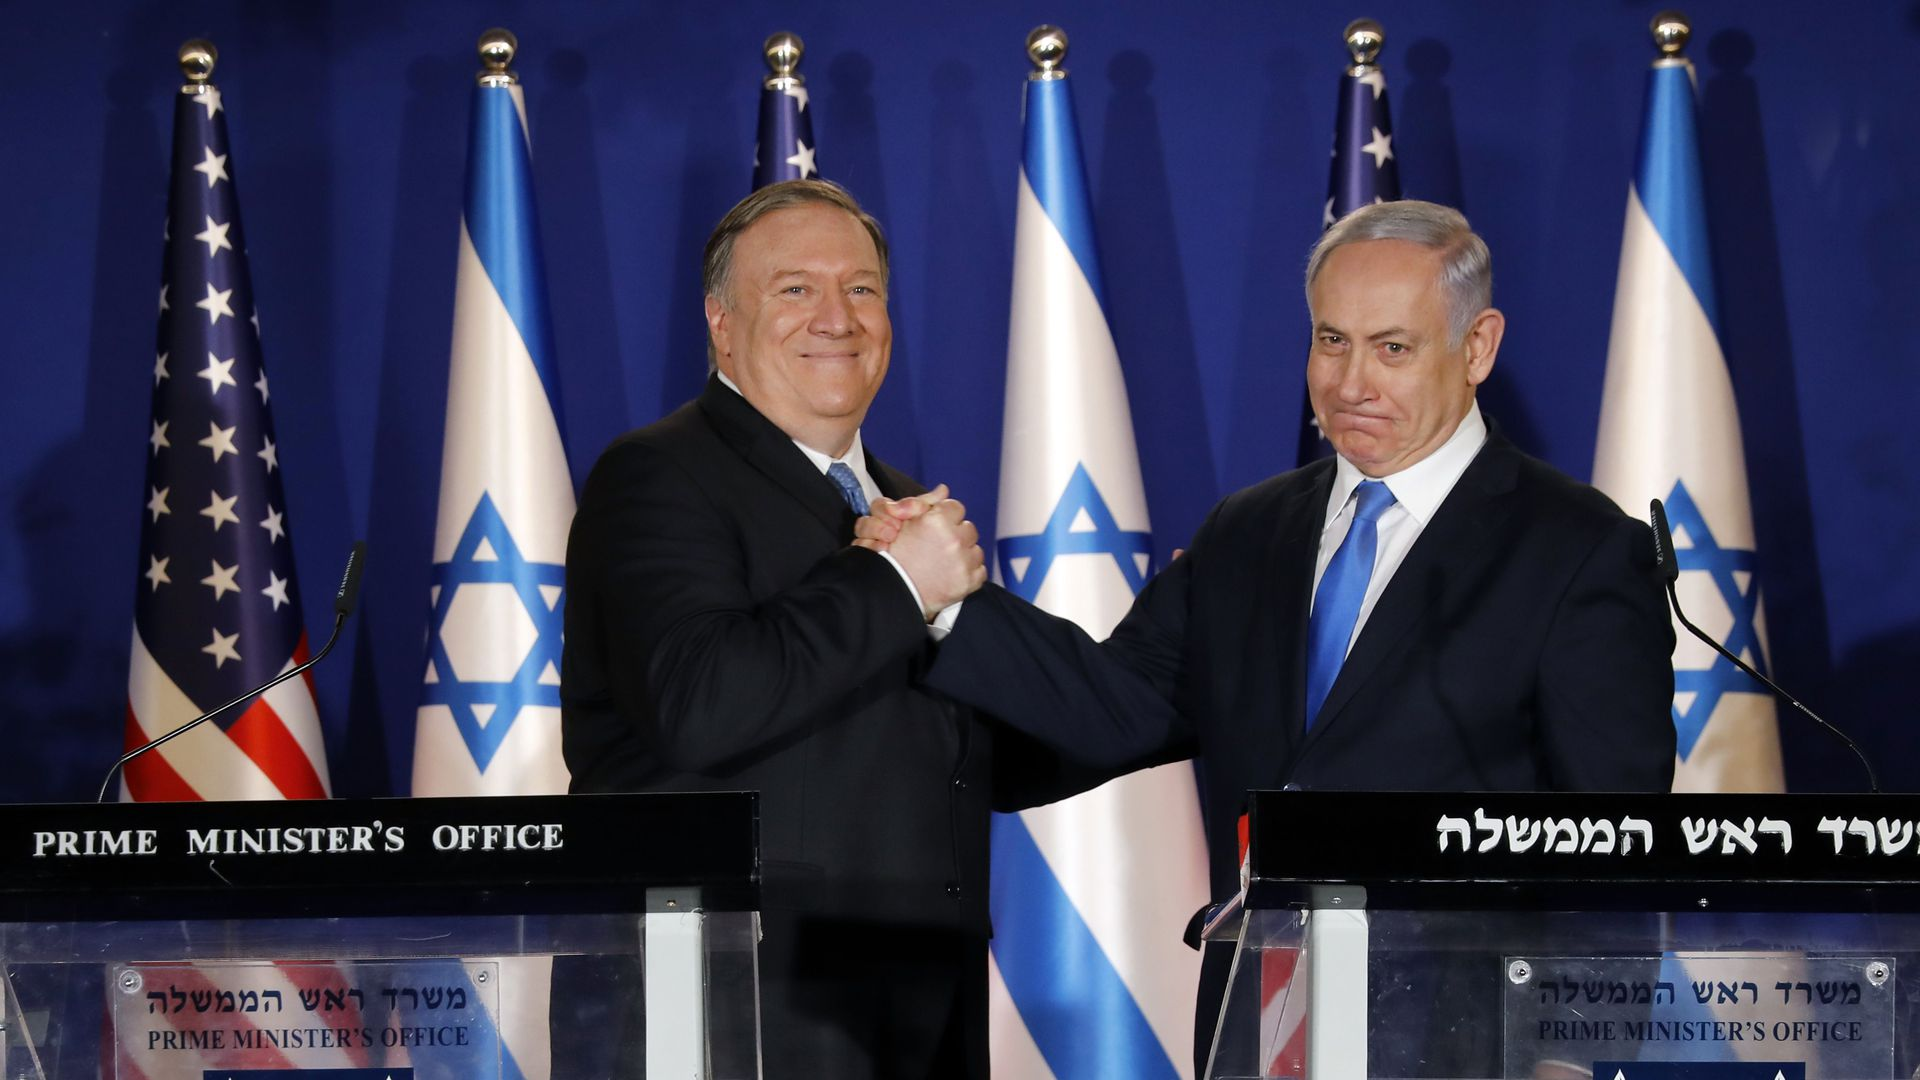 Mike Pompeo and the Israeli prime minister shake hands in front of a row of Israel and American flags, standing behind two podiums.